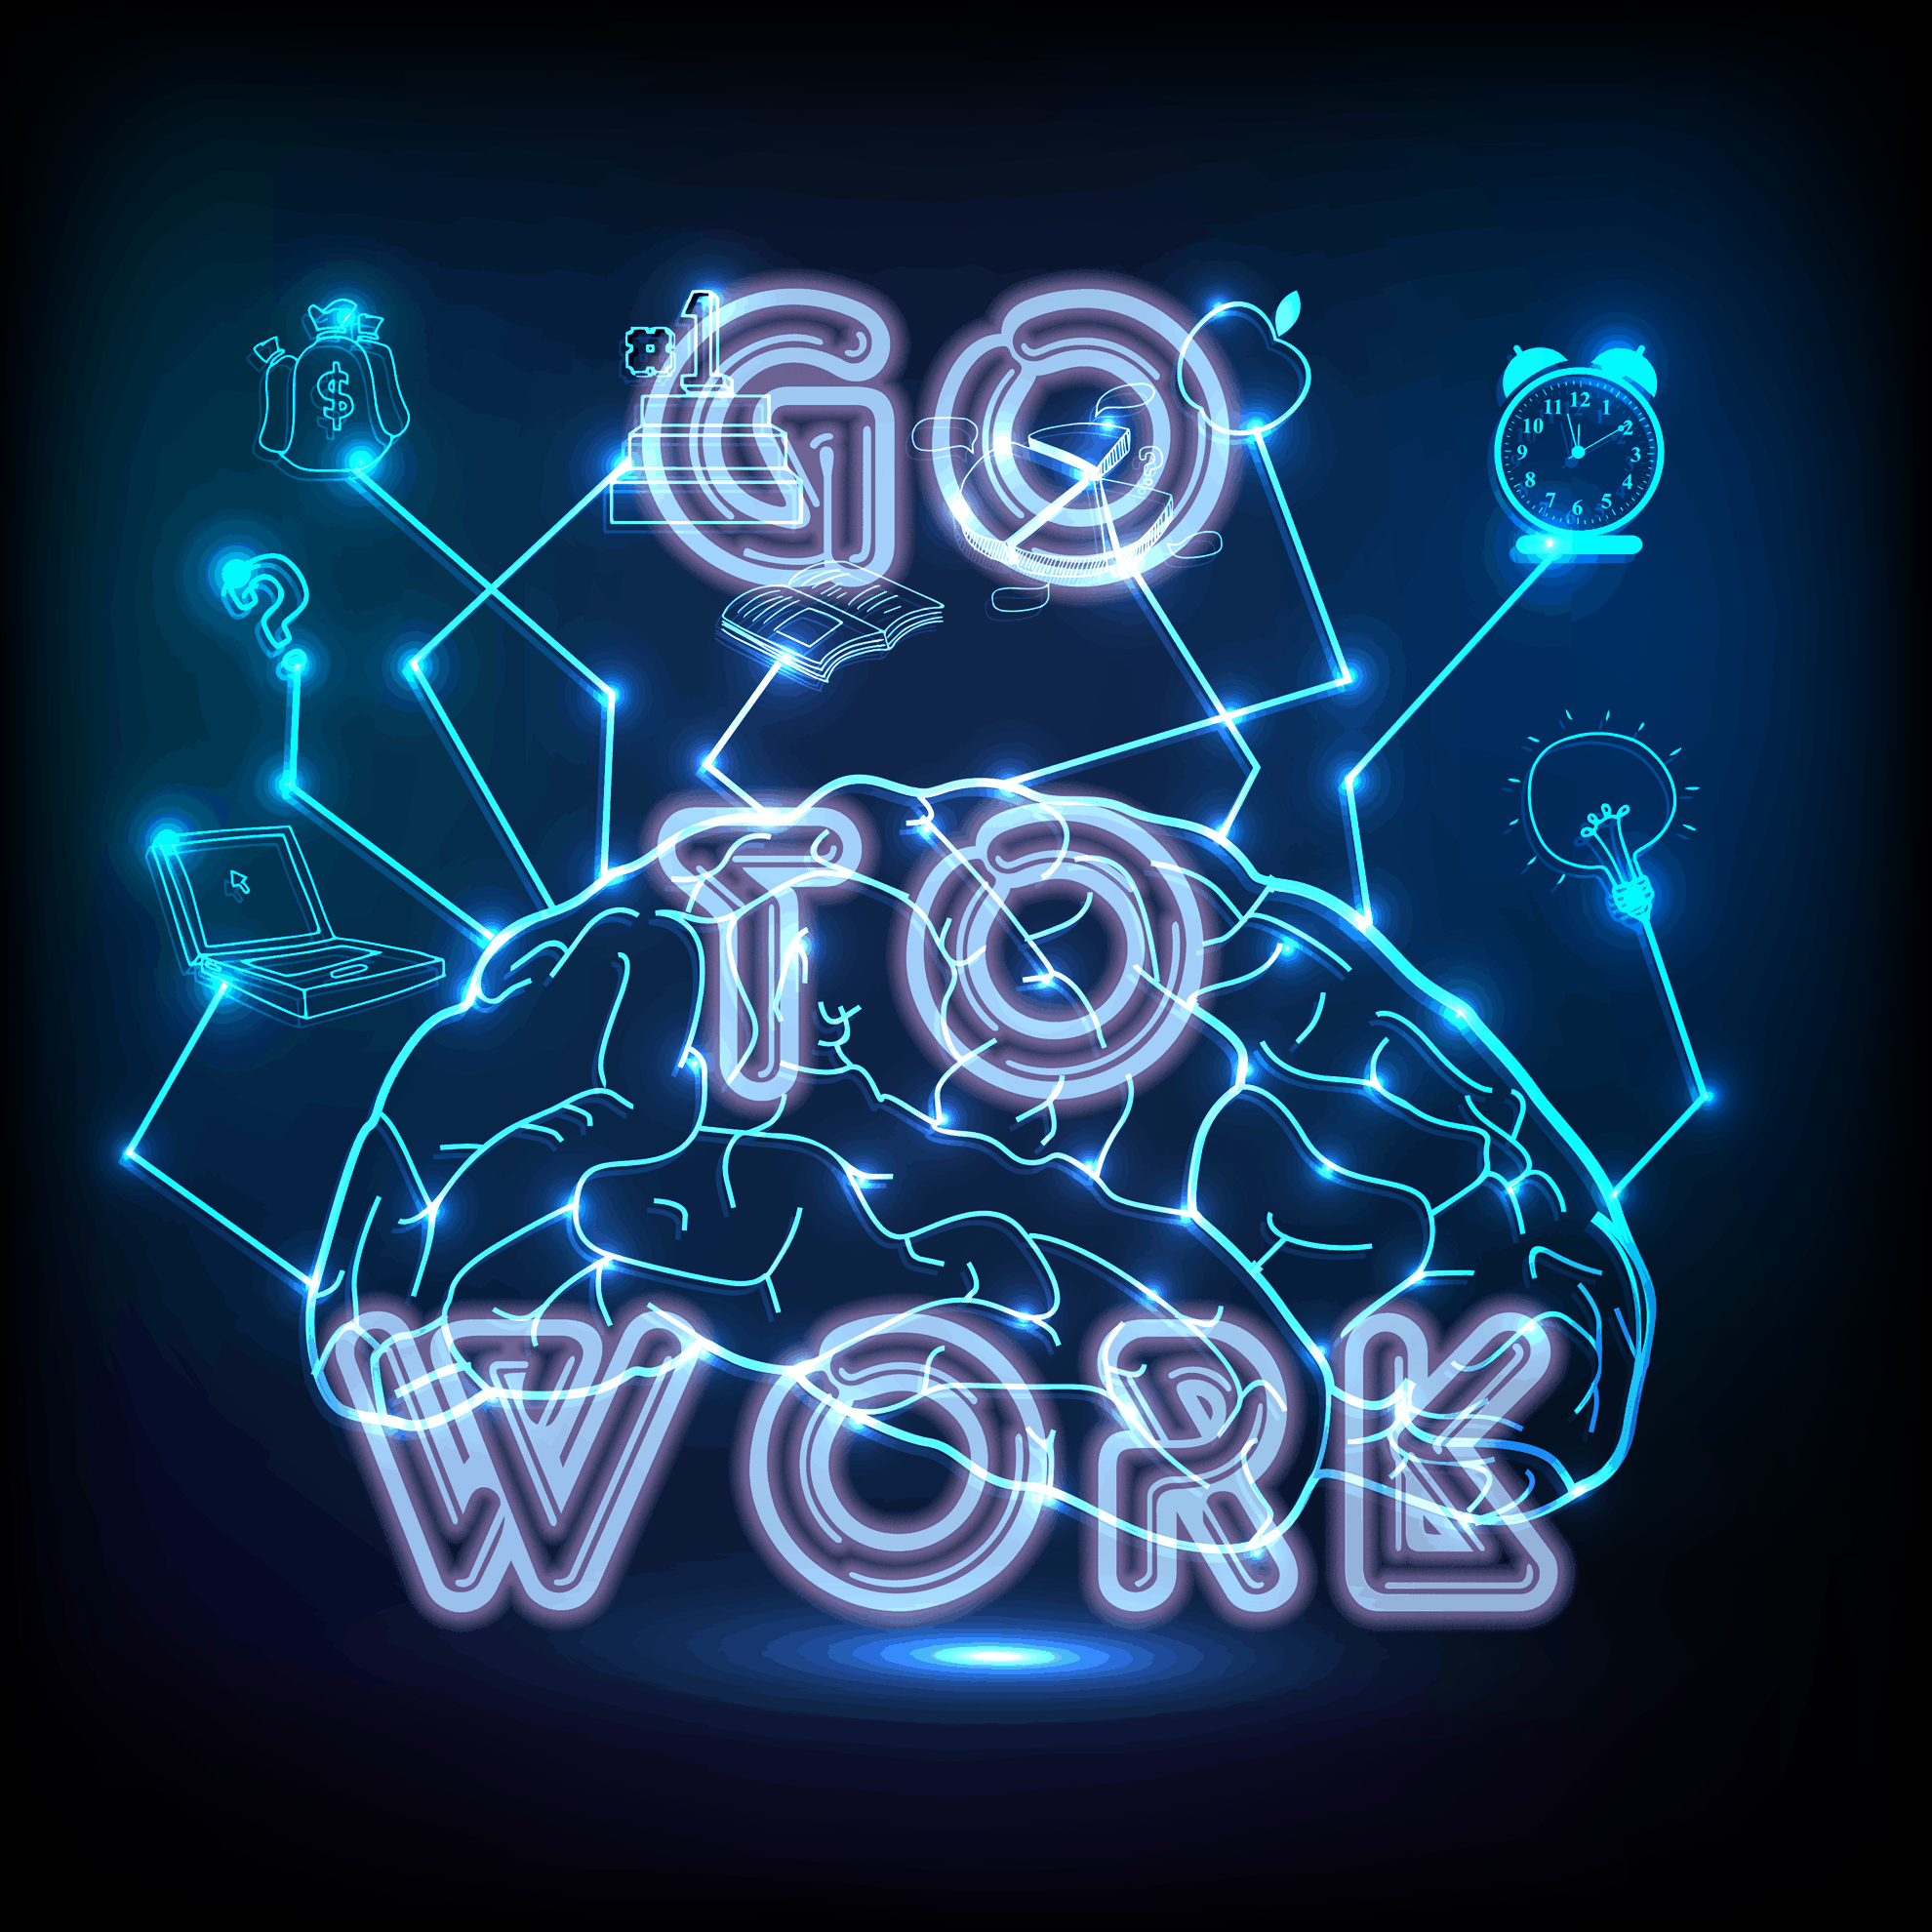 Go-To-Work